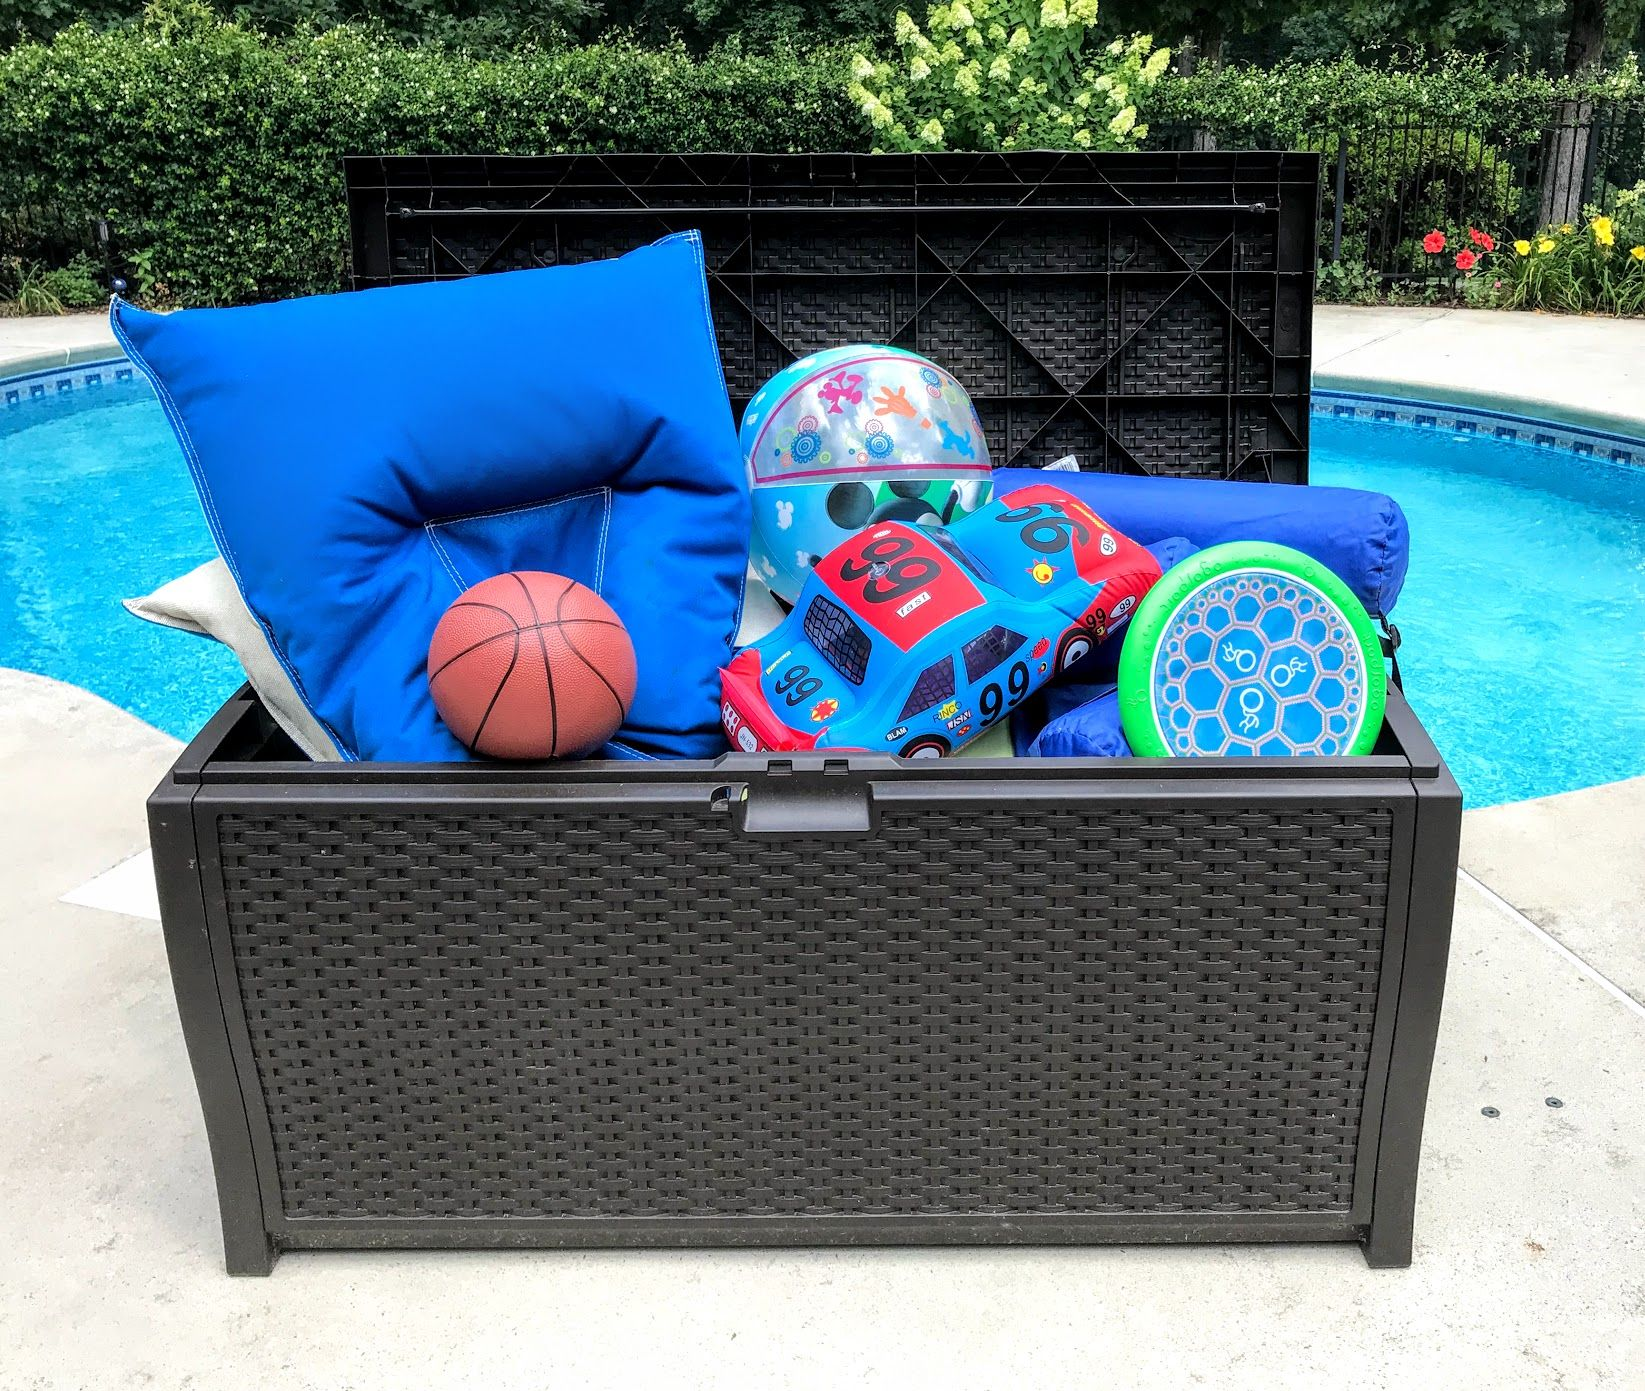 Pool Toy Storage Deck Boxes Float Organizers And More Pool Toy Storage Pool Toys Pool Deck Box